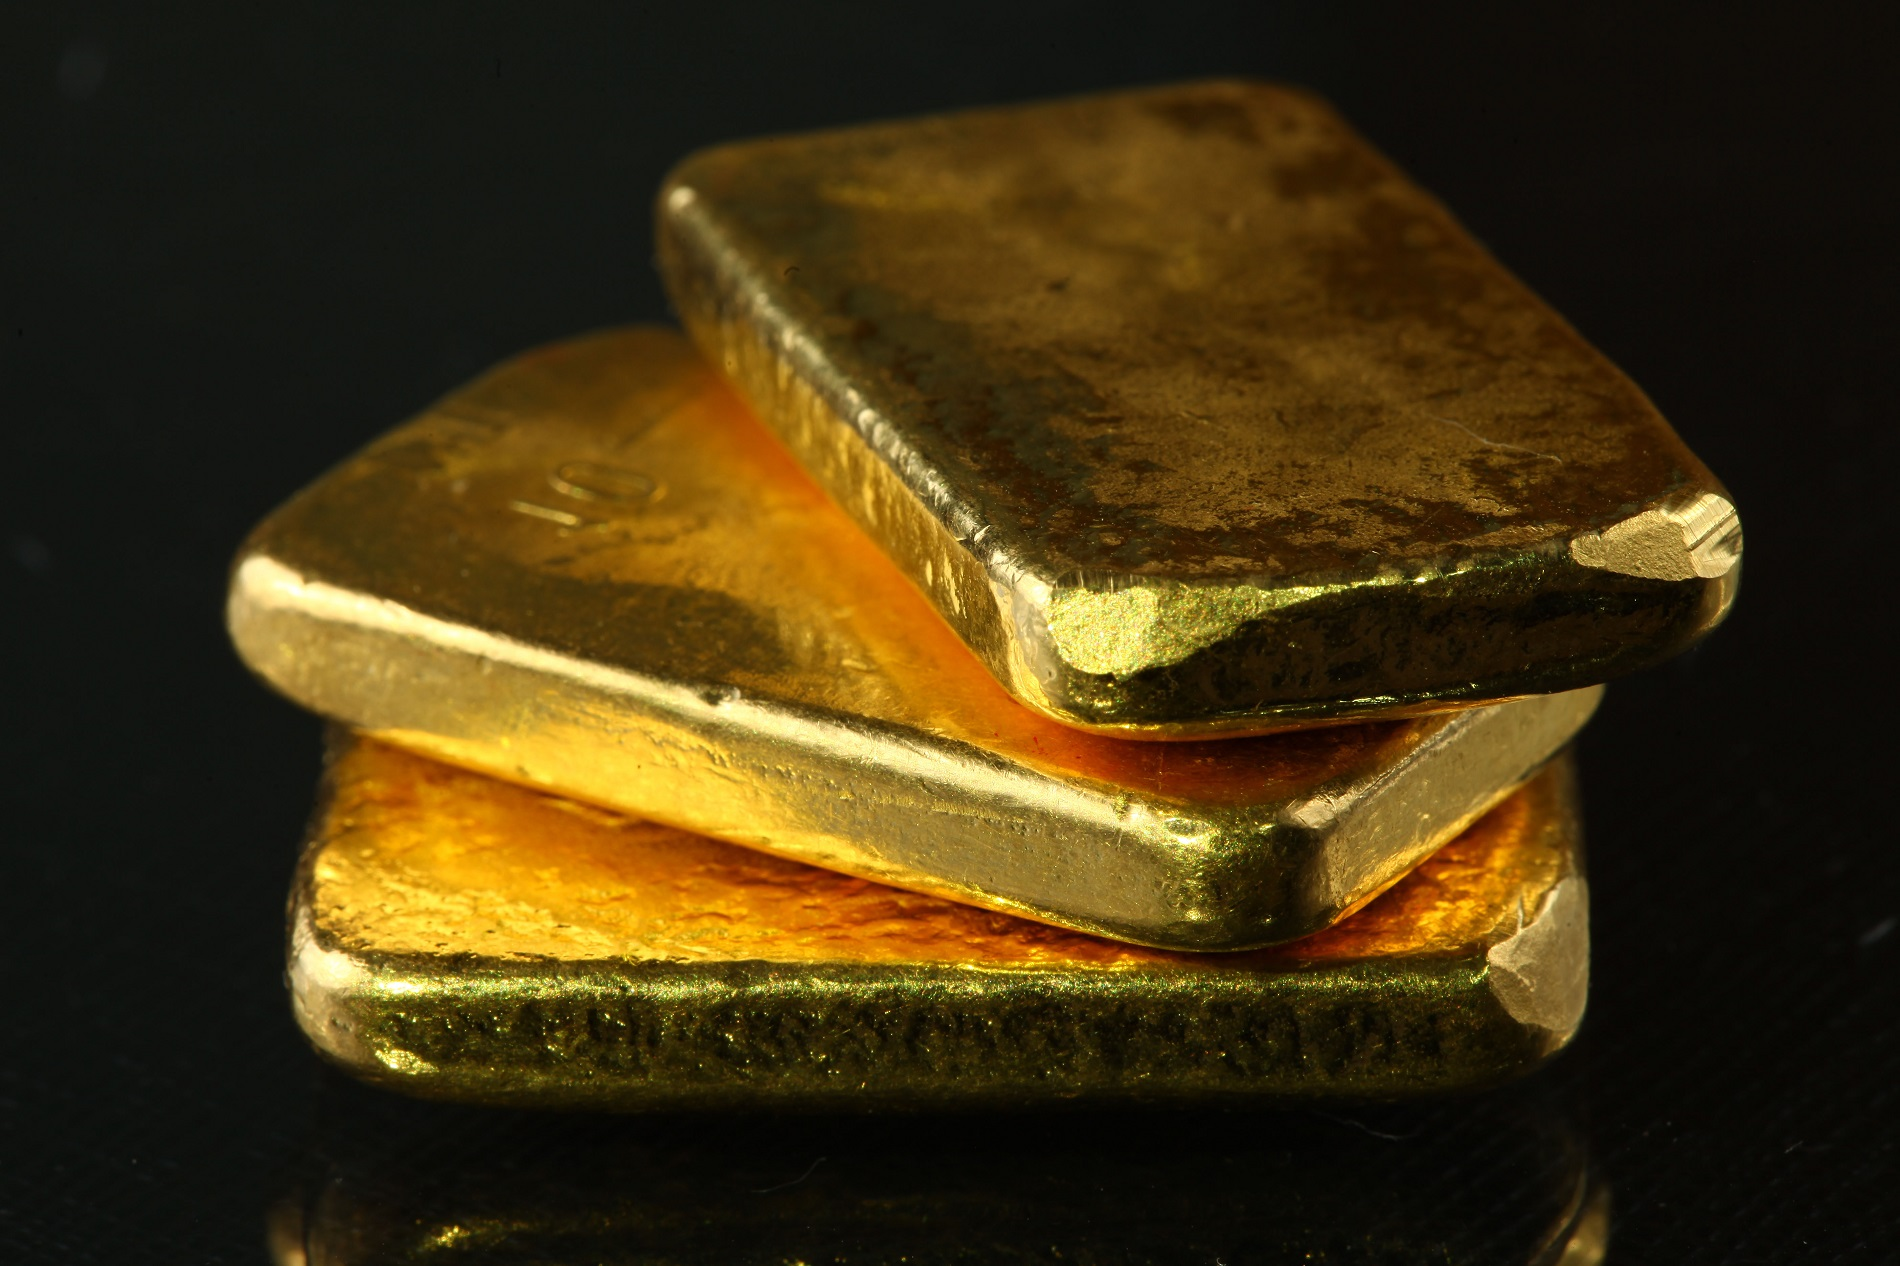 Gold bar put on the dark background represent the business concept related idea. | Bild (Ausschnitt): © Eurostar1977 - Dreamstime.com